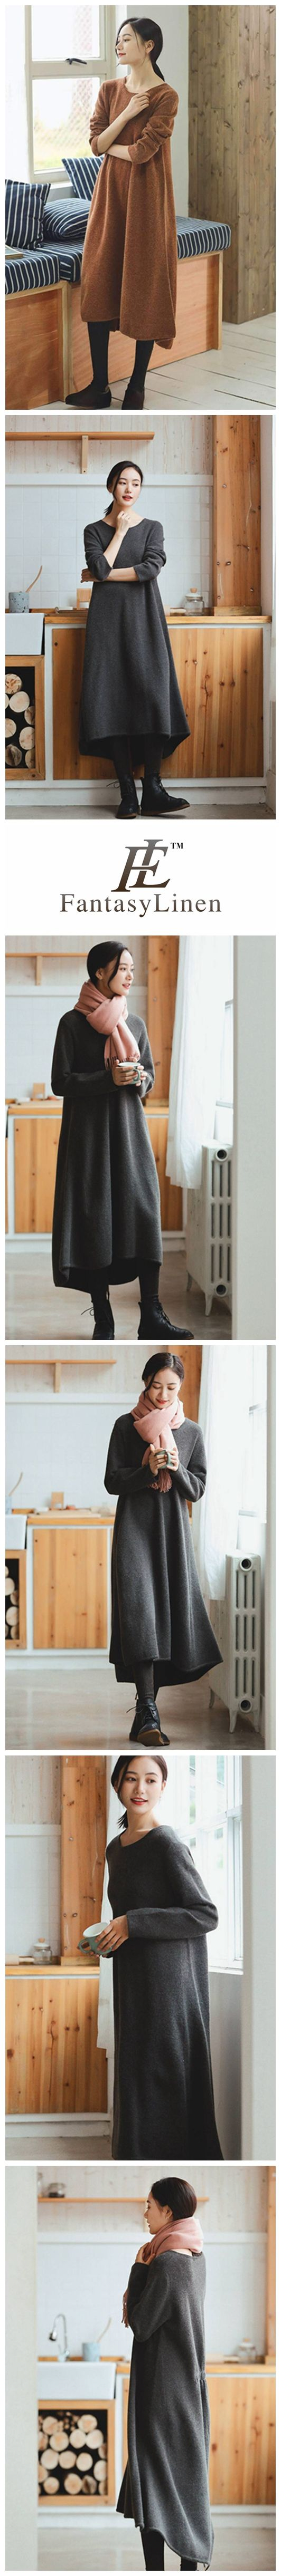 Gray Maxi Loose Wool Knitted Long Sweater Dress in Autumn/Winter   Q2731Gray